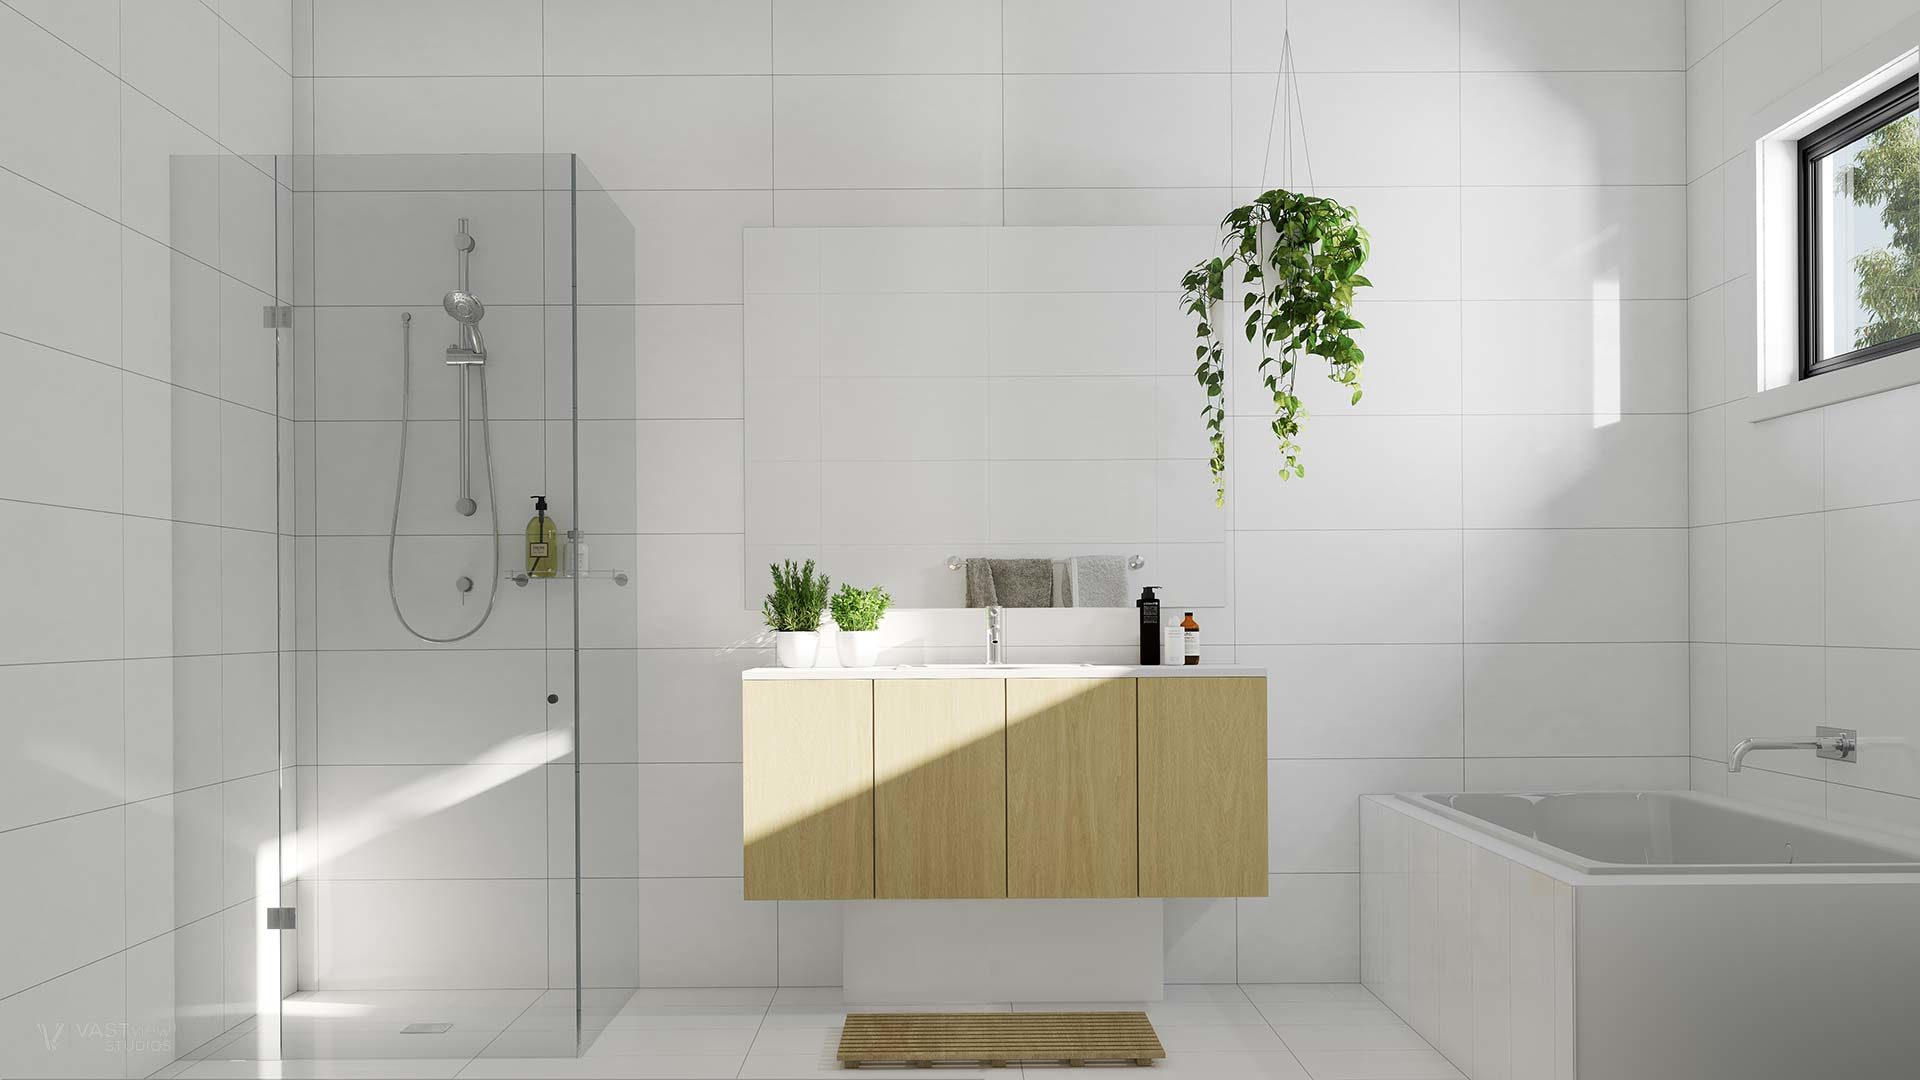 MeadowvaleDr_Bathroom_FinalRender_v1.0